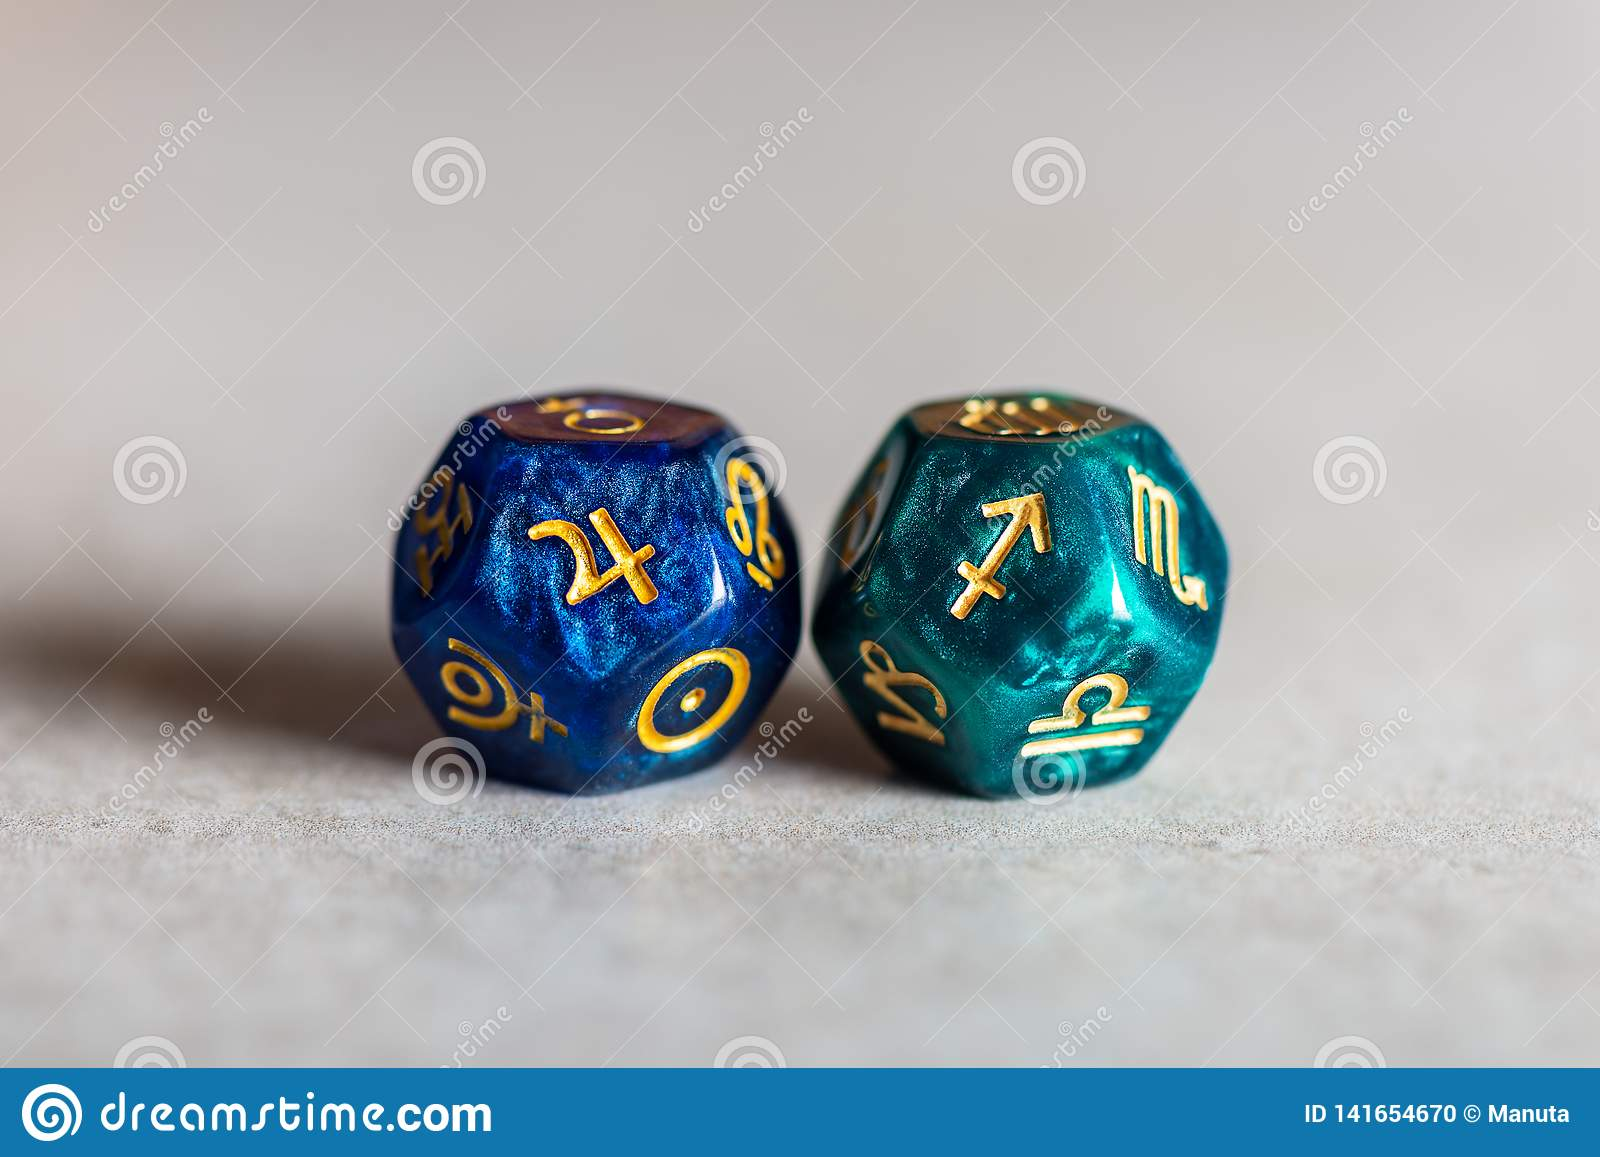 Astrology Dice with zodiac symbol of Sagittarius and its ruling planet Jupiter